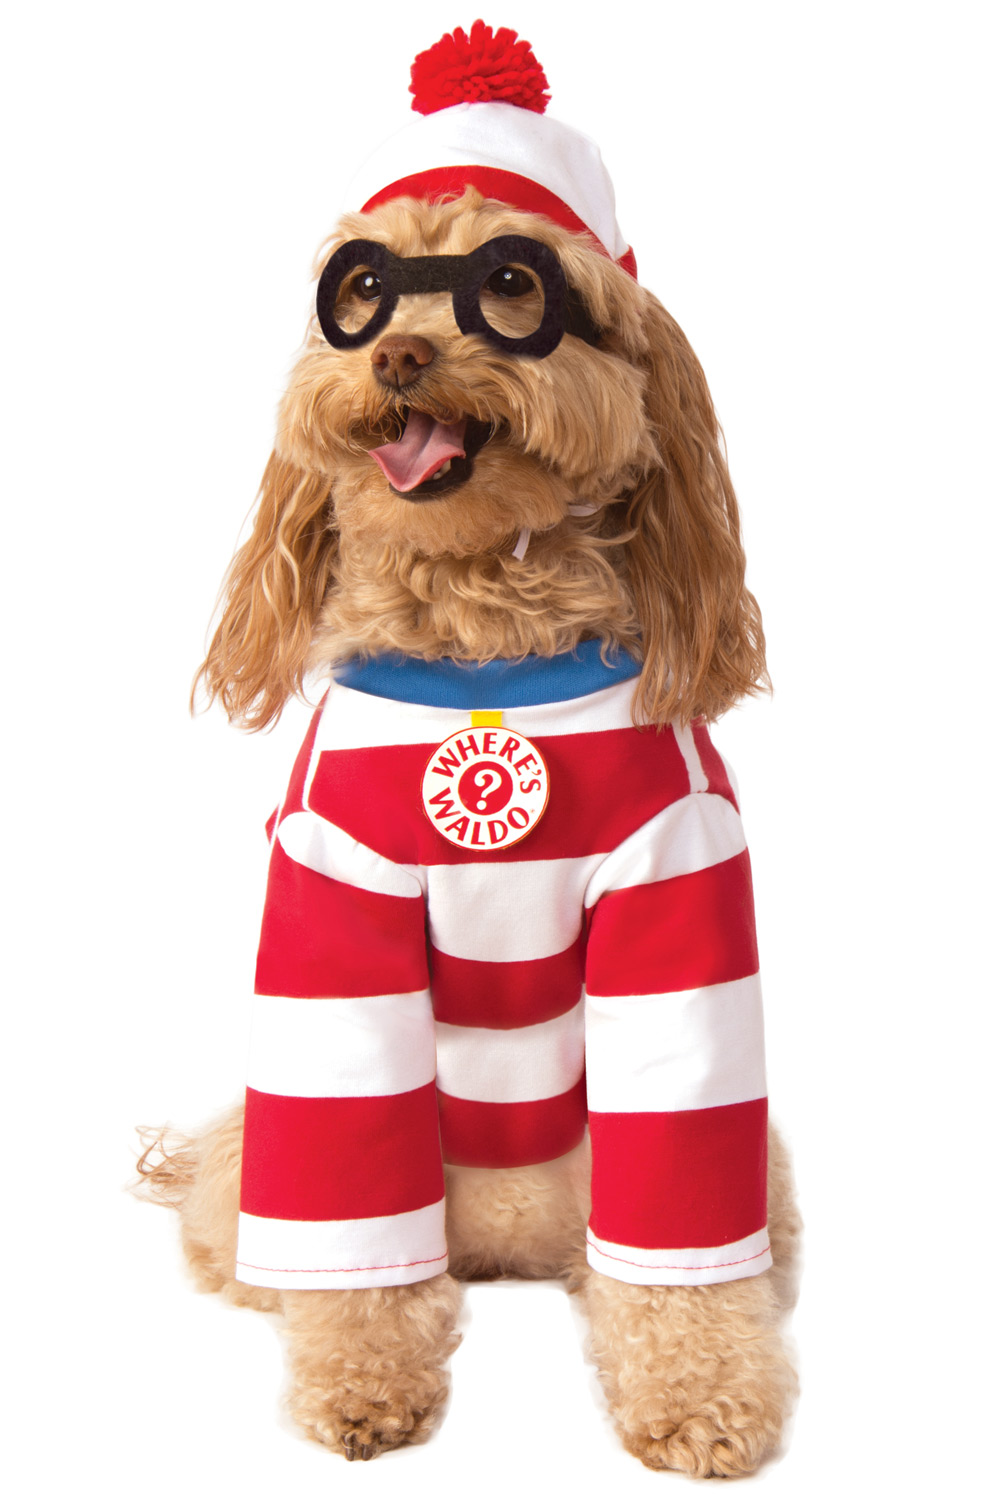 WHERE'S WALDO COSTUME FOR LARGE DOGS